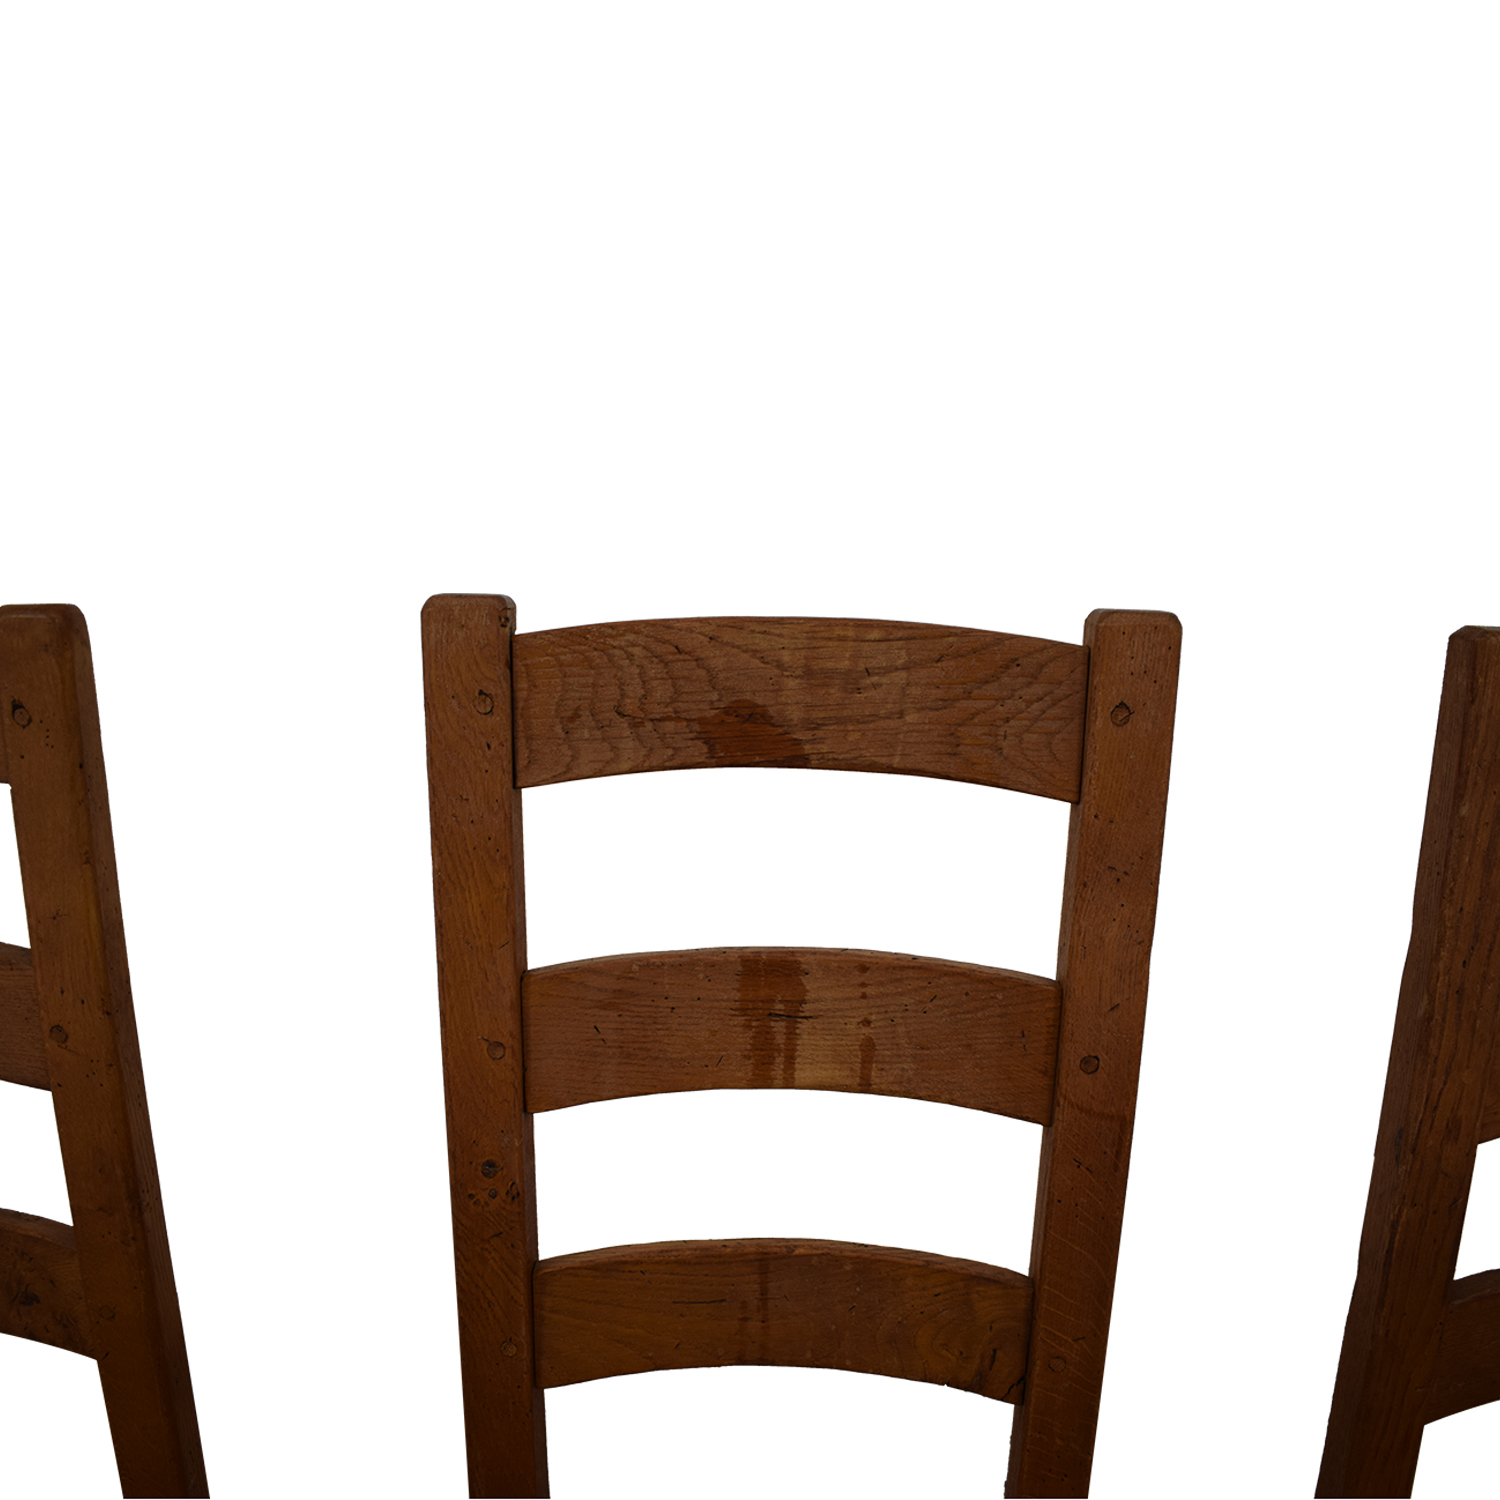 Crate & Barrel Crate & Barrel French Farm Dining Chairs second hand